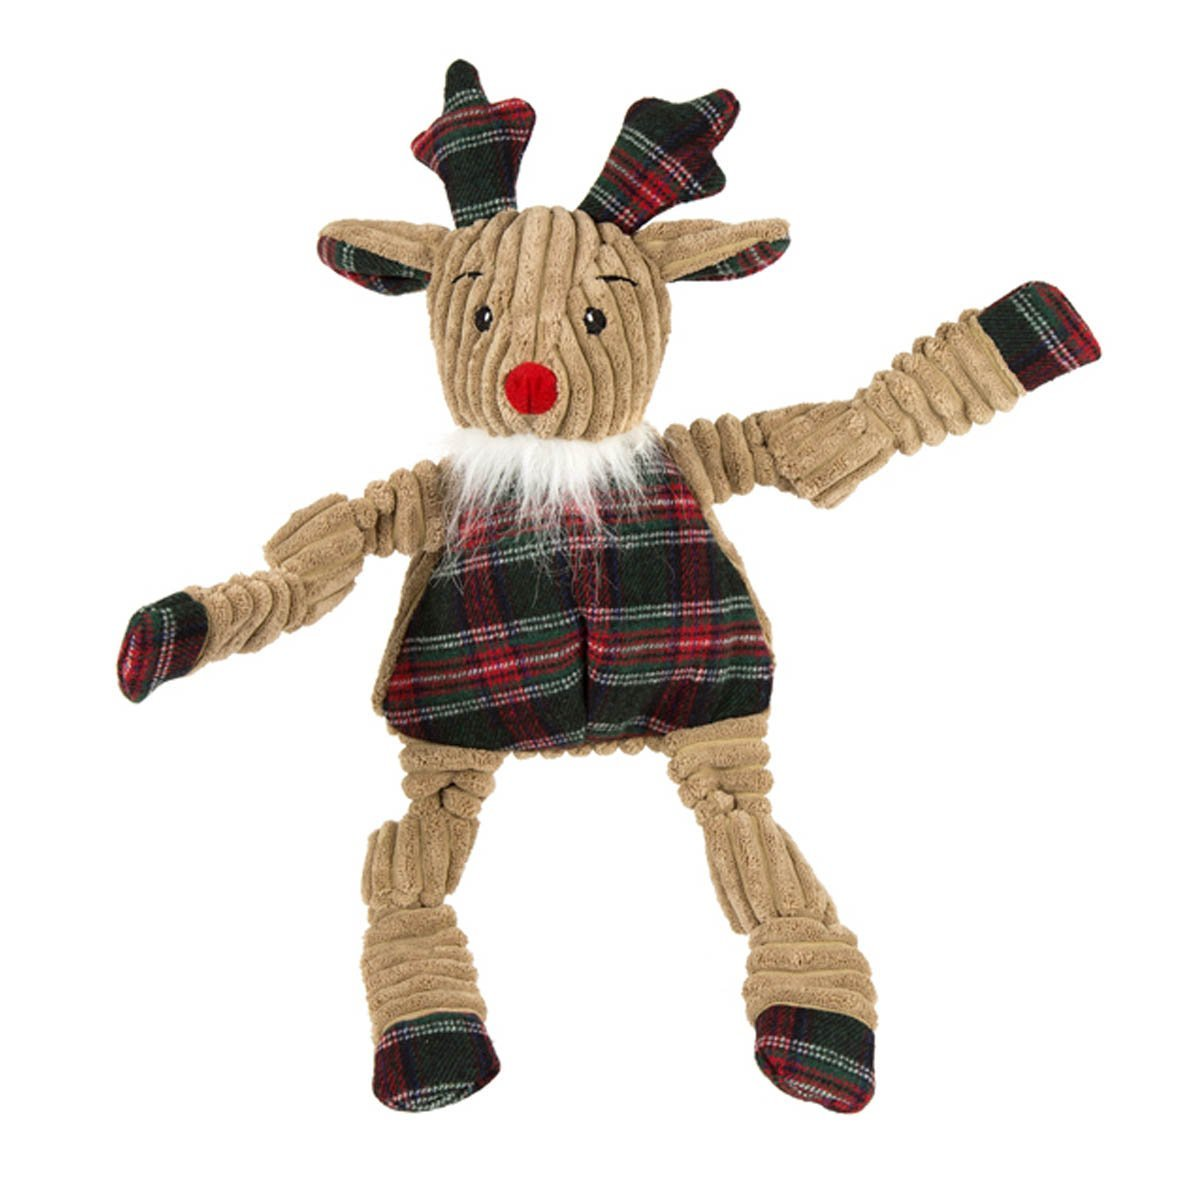 Hugglehounds Holiday Knottie w/Plaid Sweater Rudy, Large